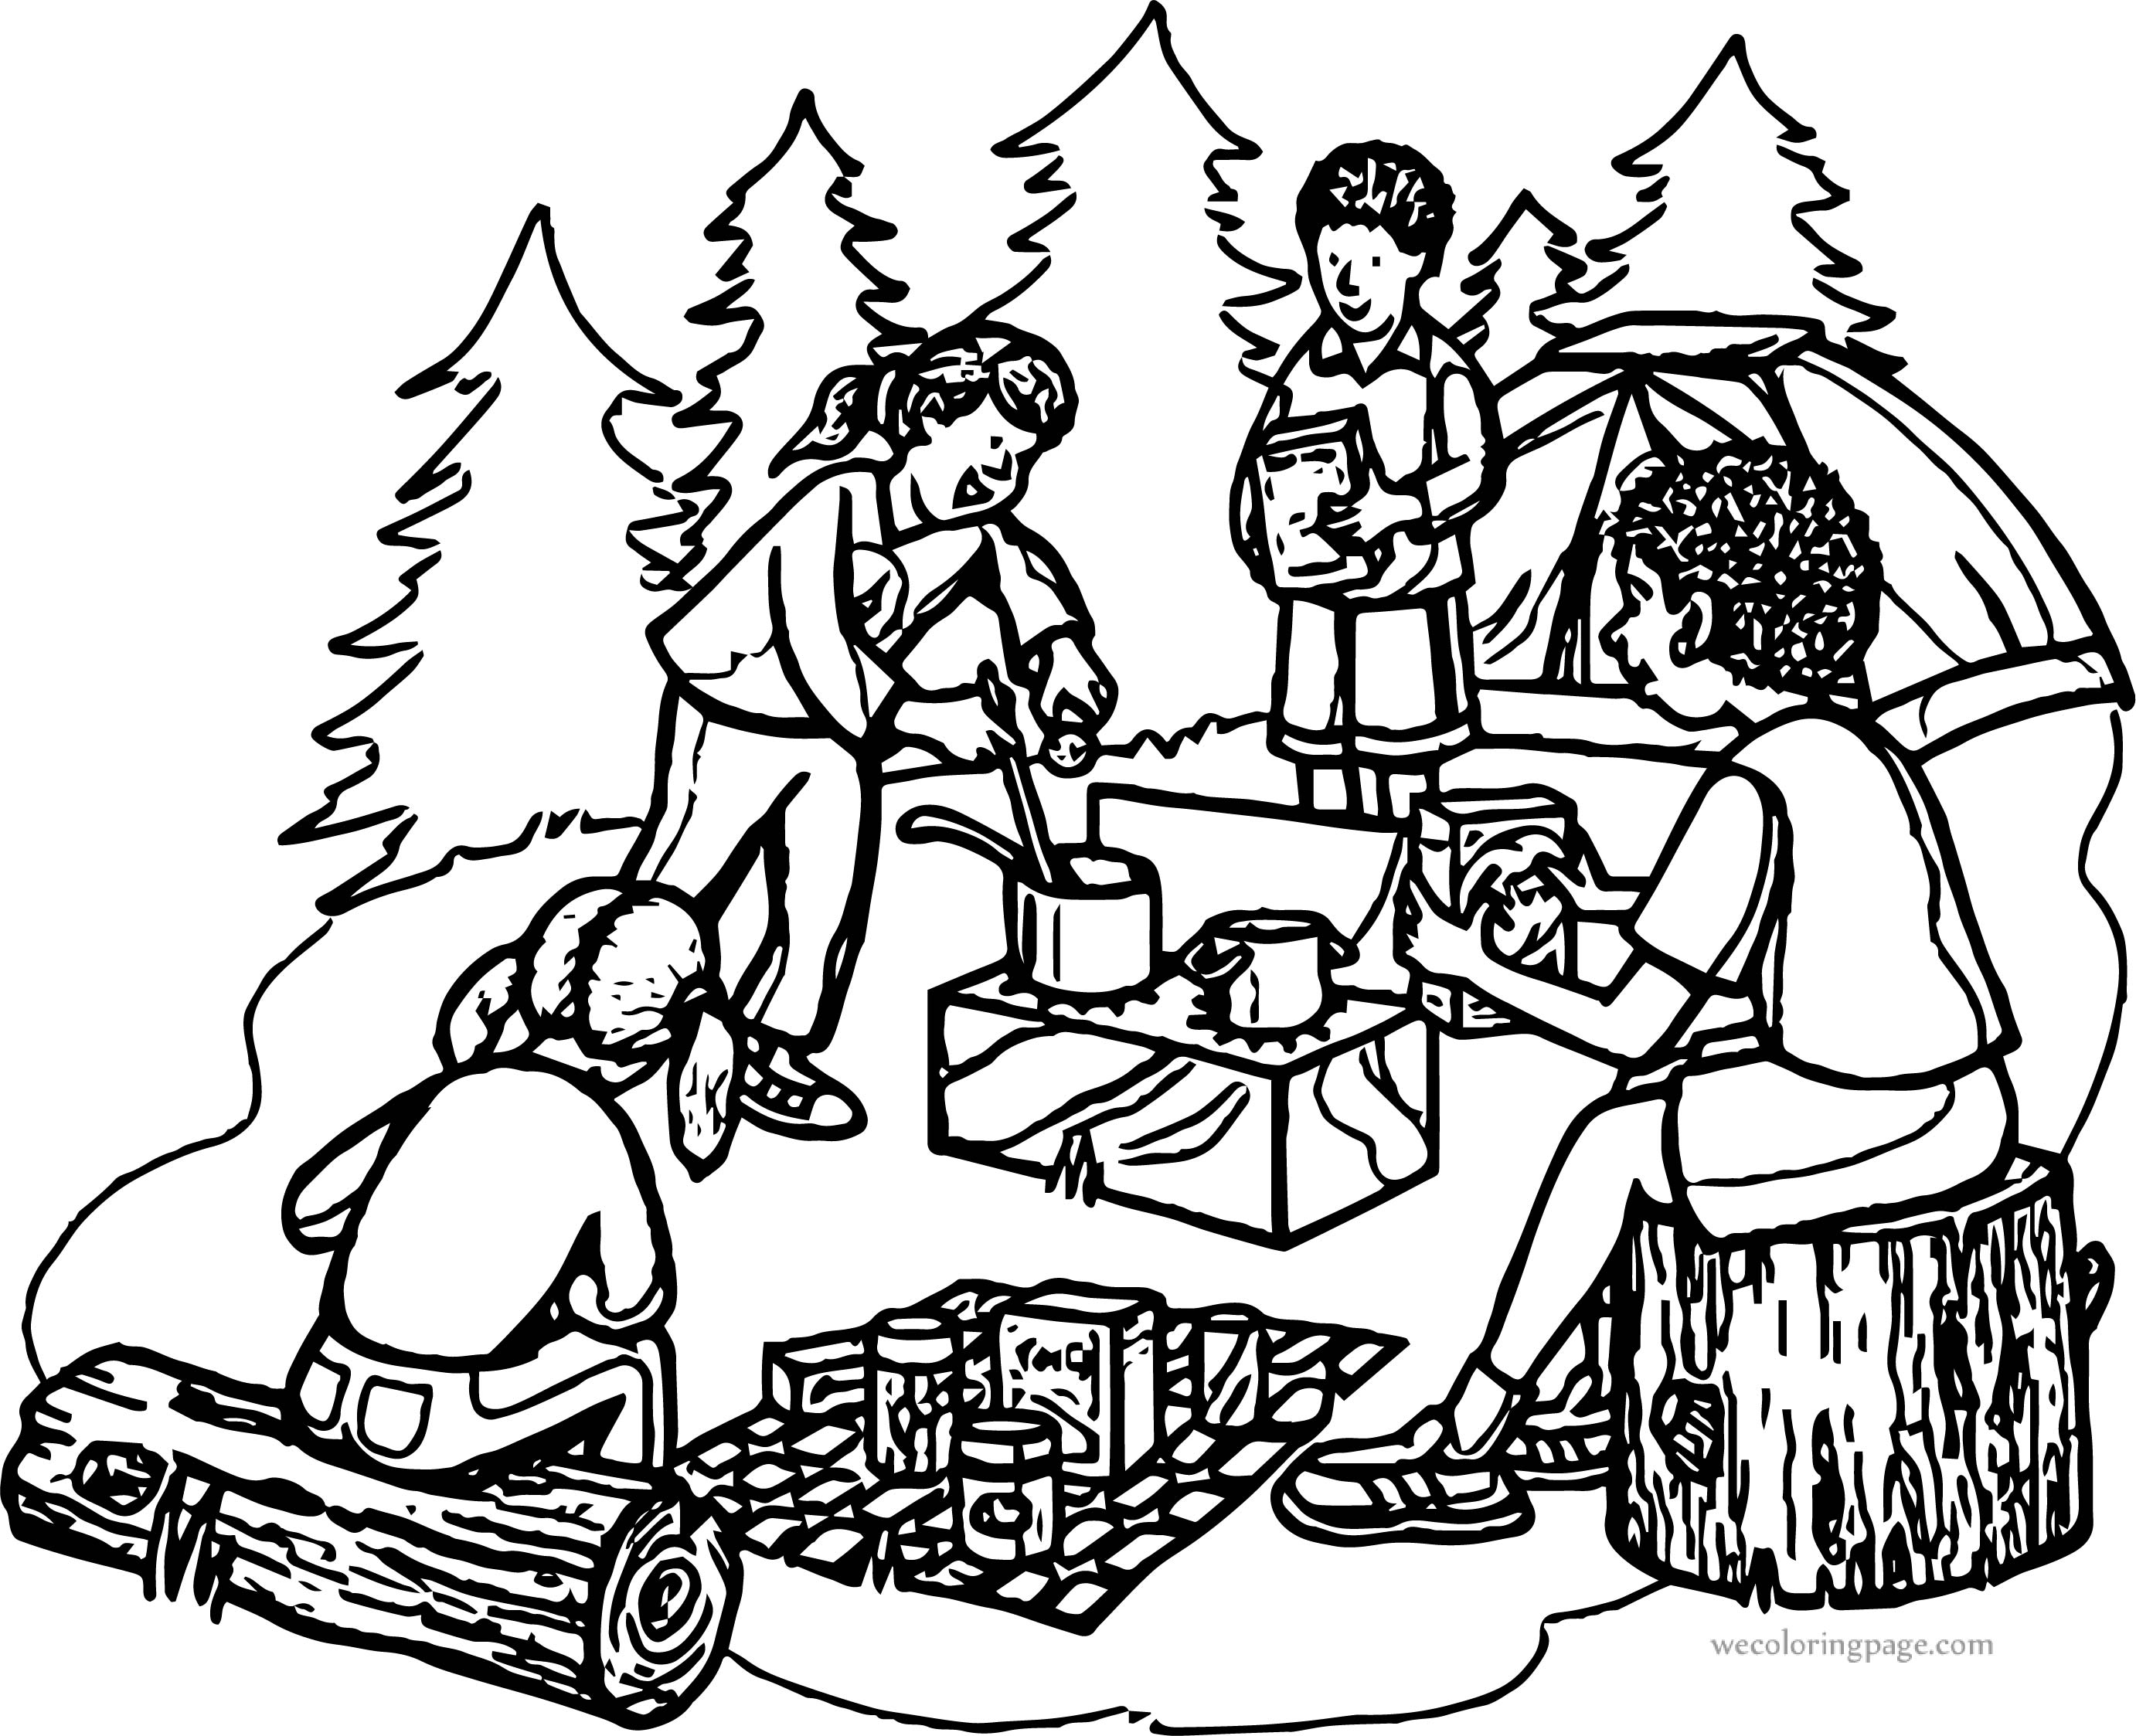 Cooking Camping Coloring Page